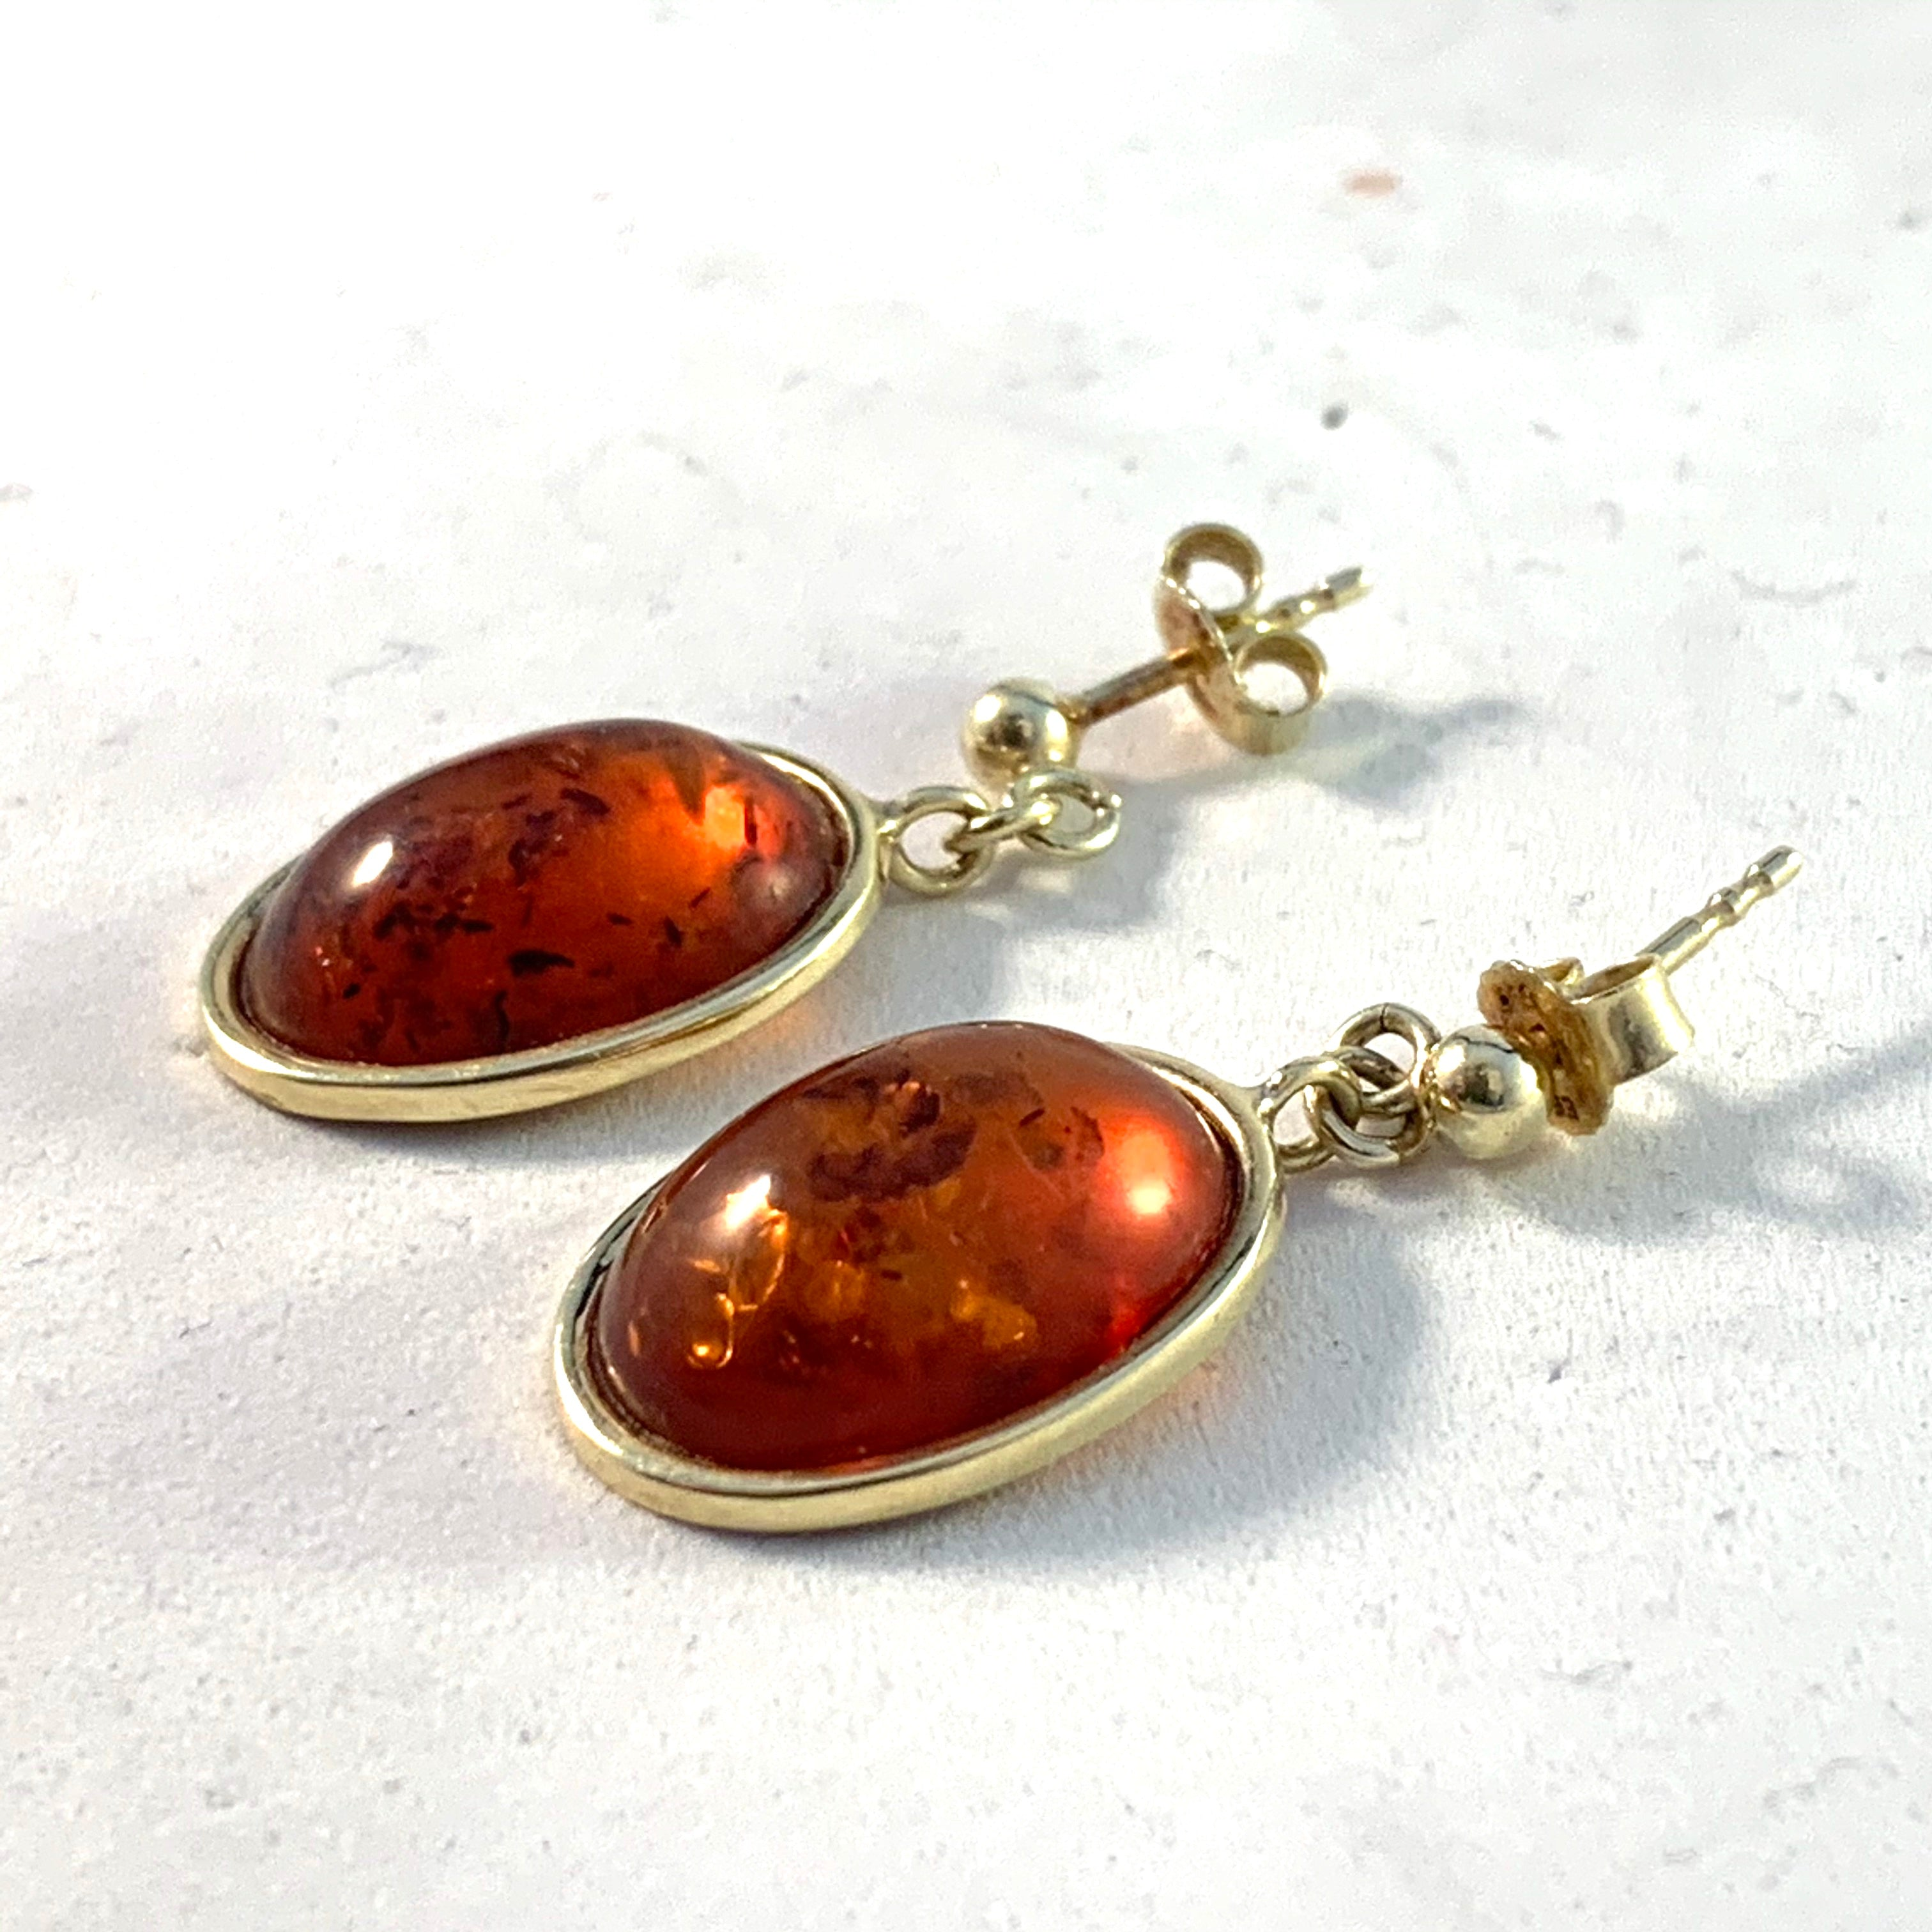 Einer Fehrn, Denmark 1960s 14k Gold Amber Earrings.